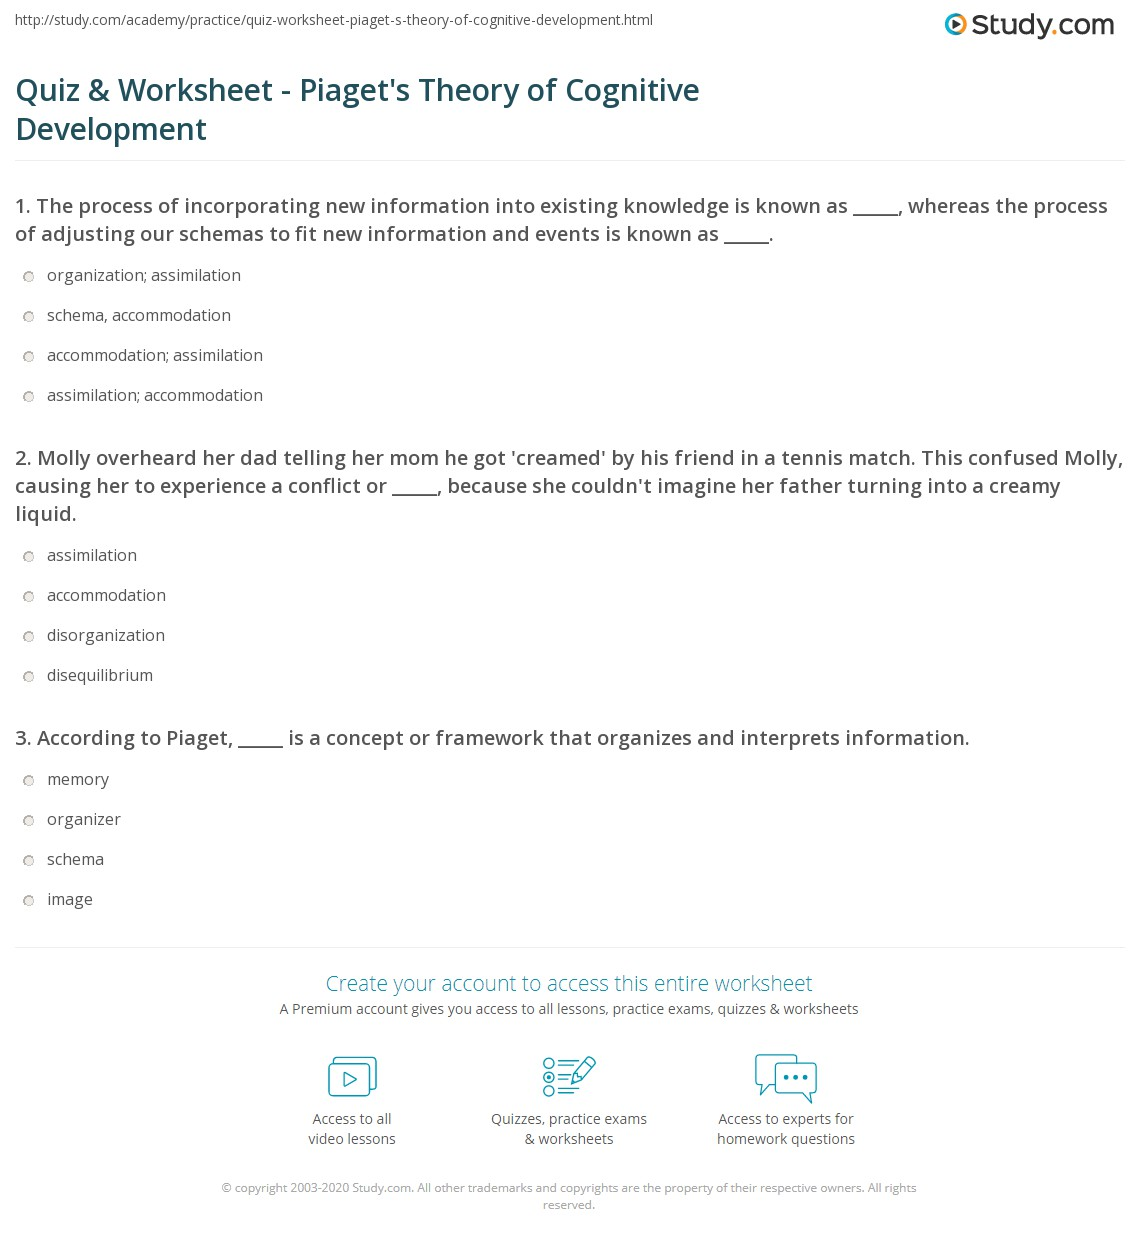 quiz worksheet piaget s theory of cognitive development 1 molly overheard her dad telling her mom he got creamed by his friend in a tennis match this confused molly causing her to experience a conflict or